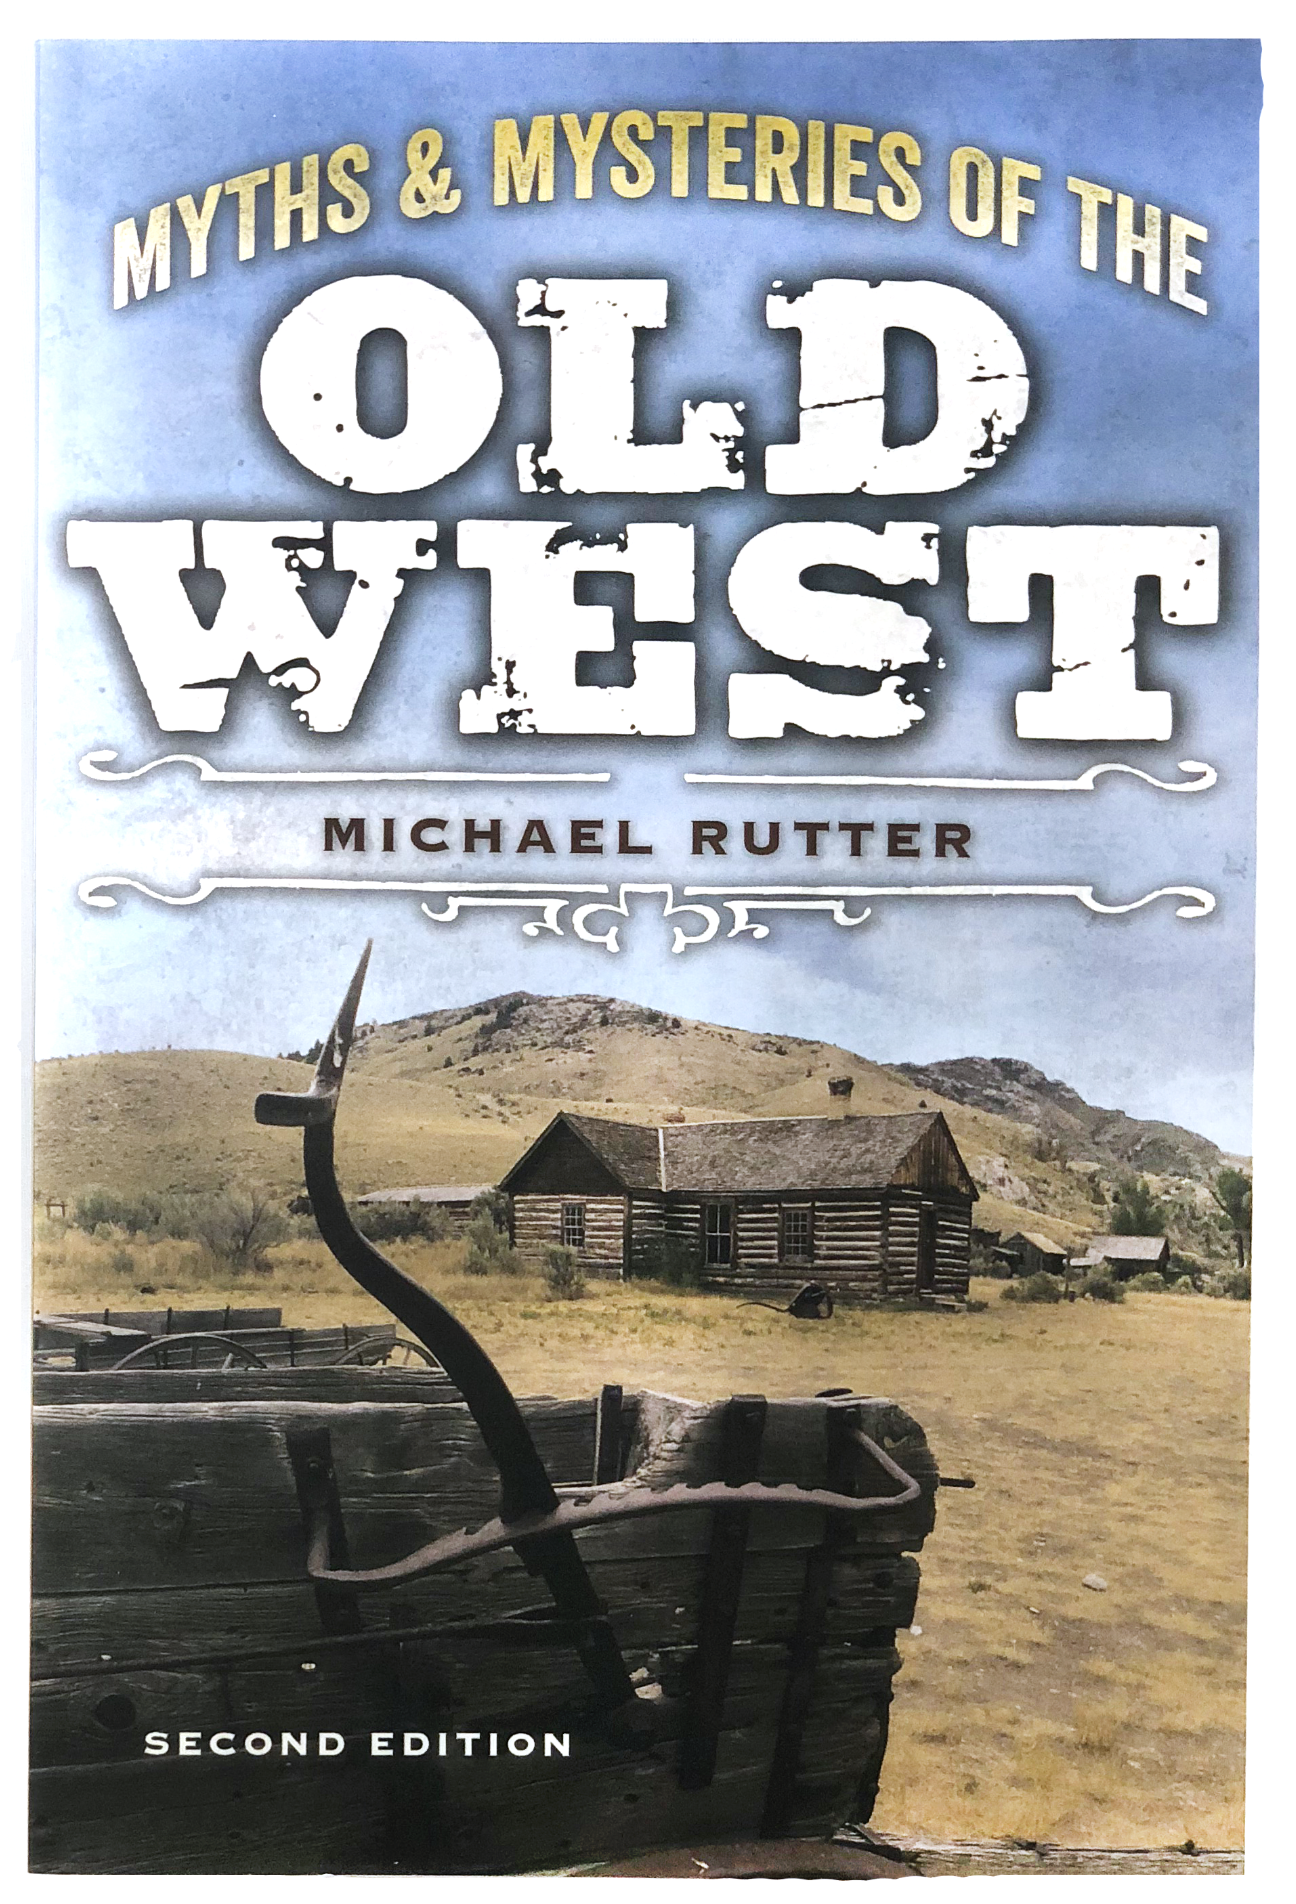 Myths & Mysteries of the Old West By Michael Rutter